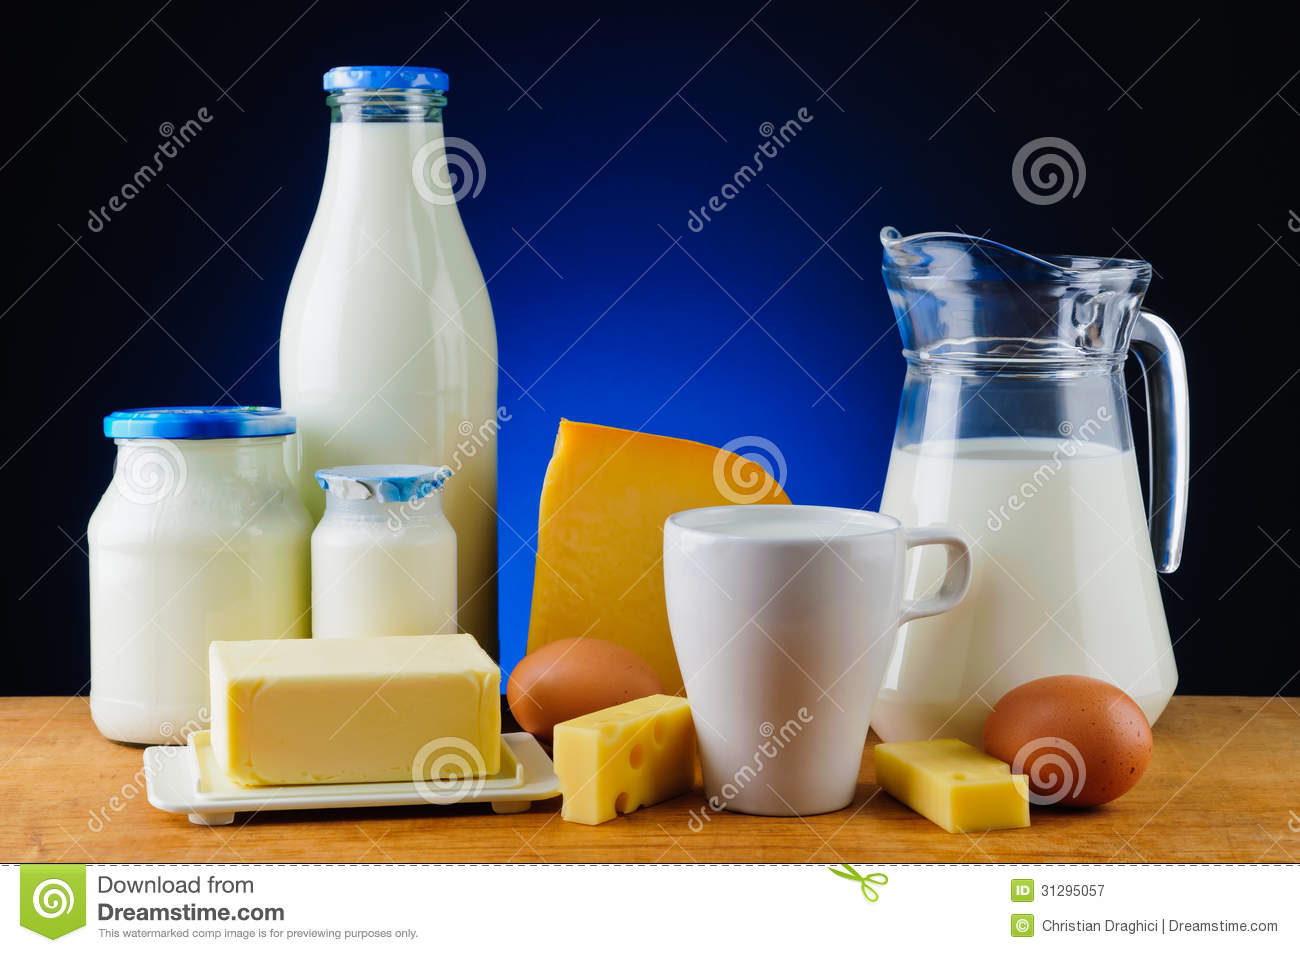 Dairy products stock image. Image of dairy, still, diet ...